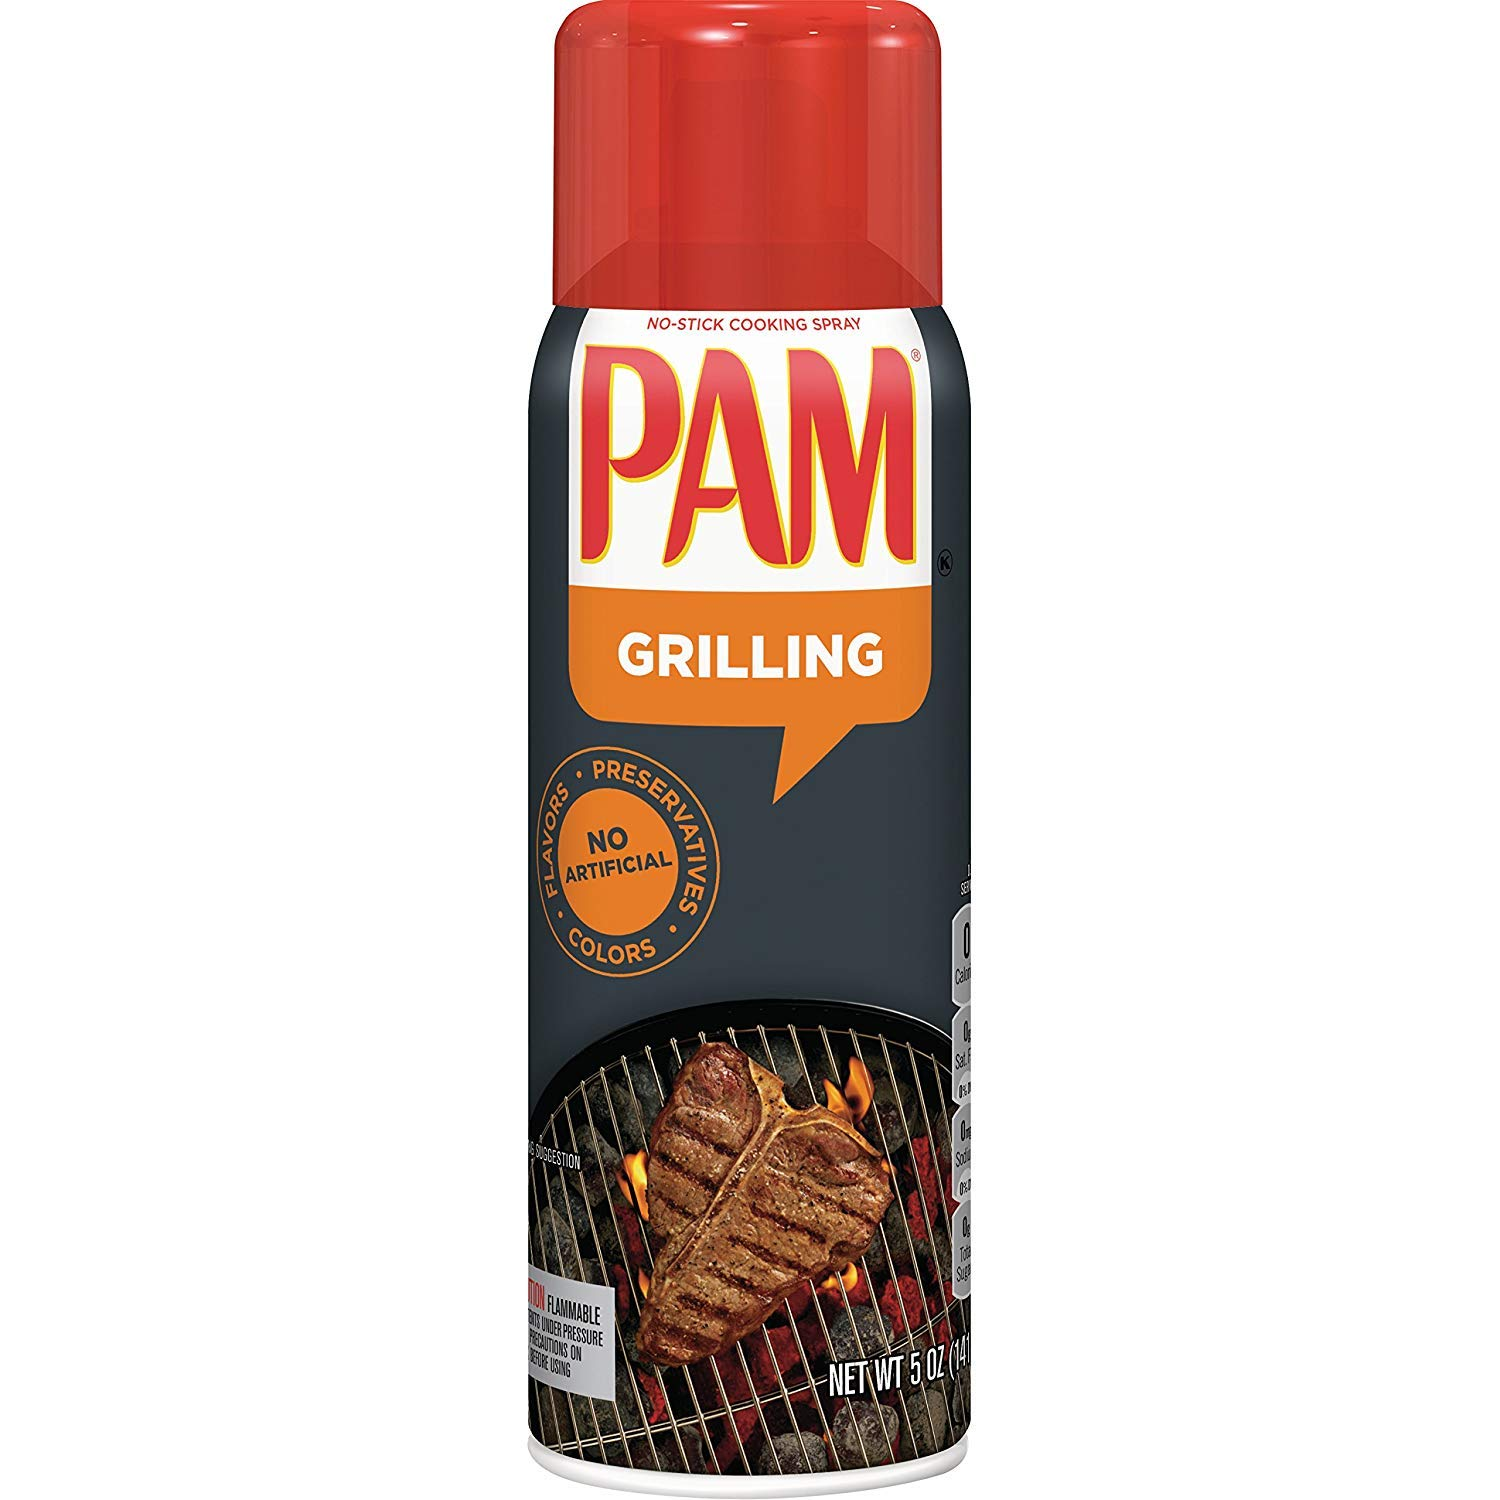 PAM No-Stick Cooking Oil Spray for Grilling 5 oz (Pack of 12) by PAM